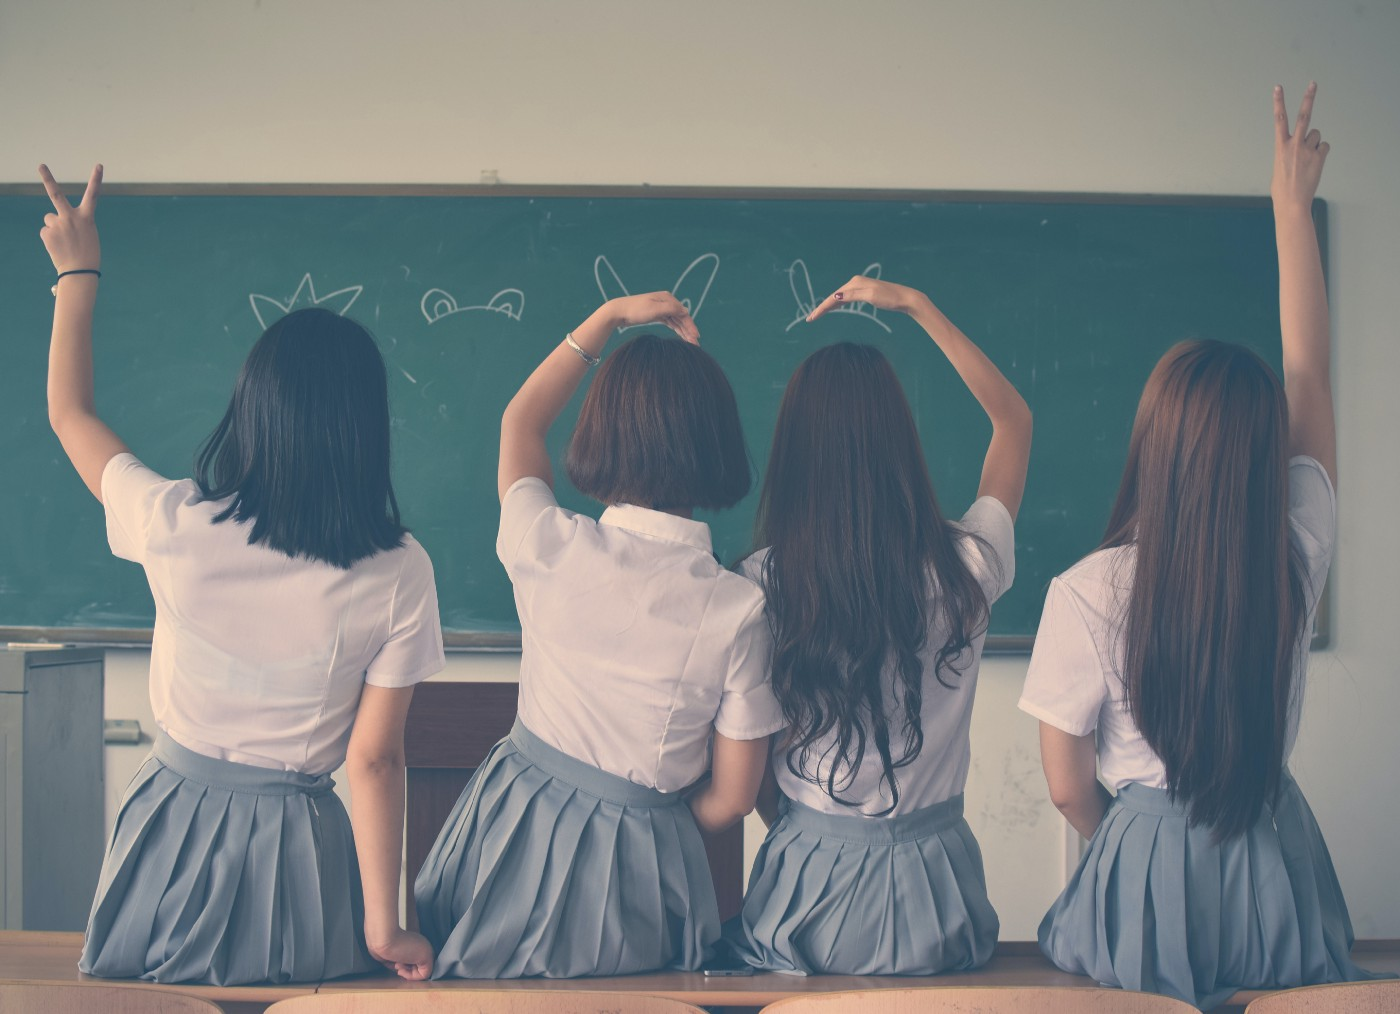 The backs of four girls in school uniform doing hand signs.